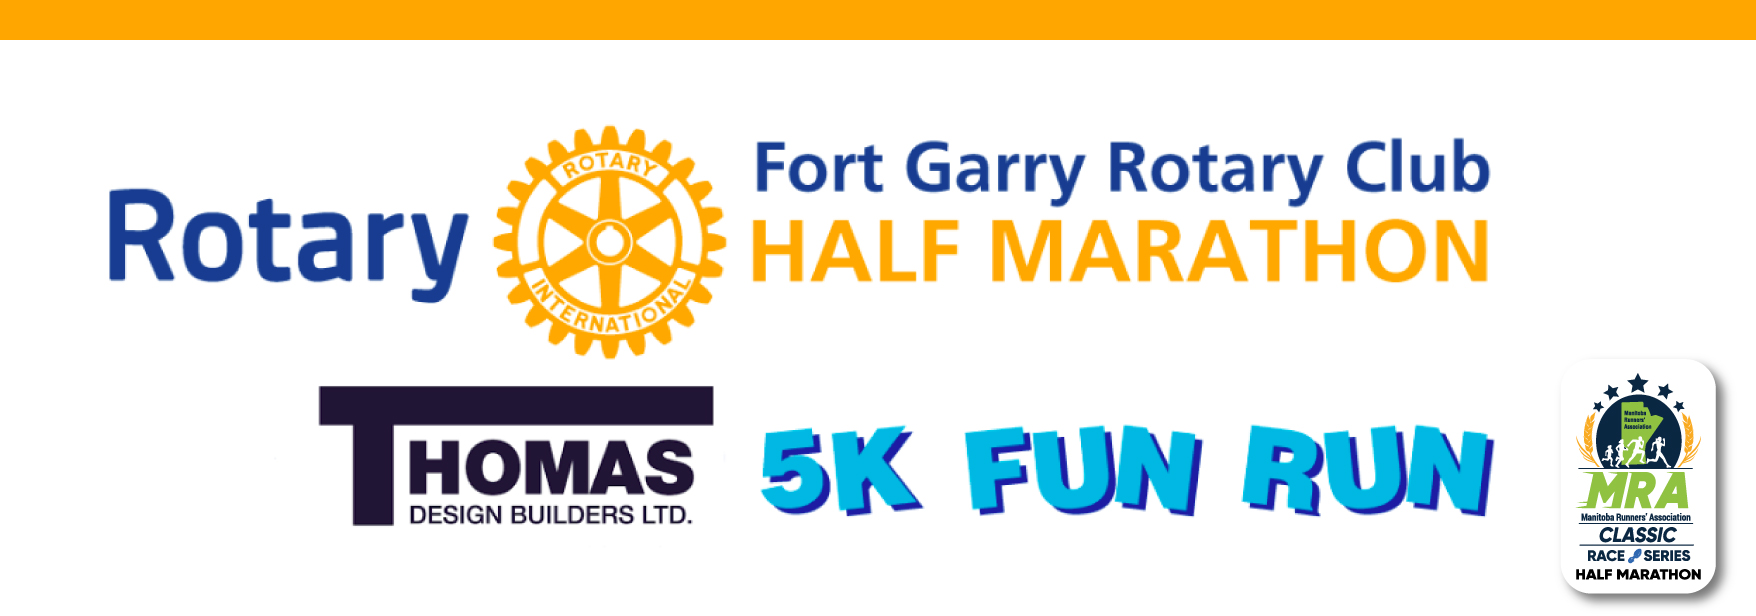 Fort Garry Rotary Half Marathon & 5K Fun Run